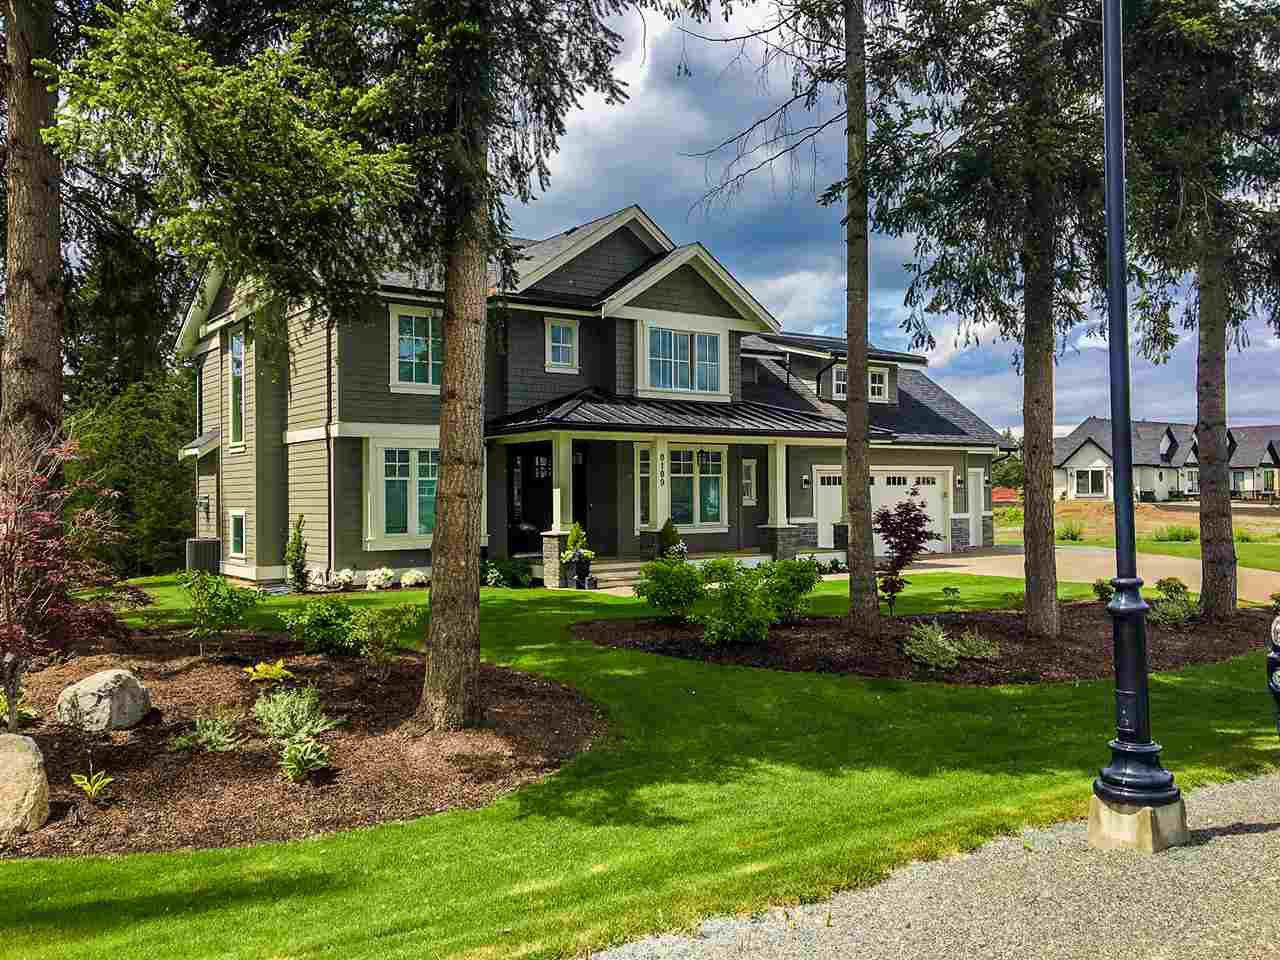 Main Photo: 8109 231 Street in Langley: Fort Langley House for sale : MLS®# R2405260